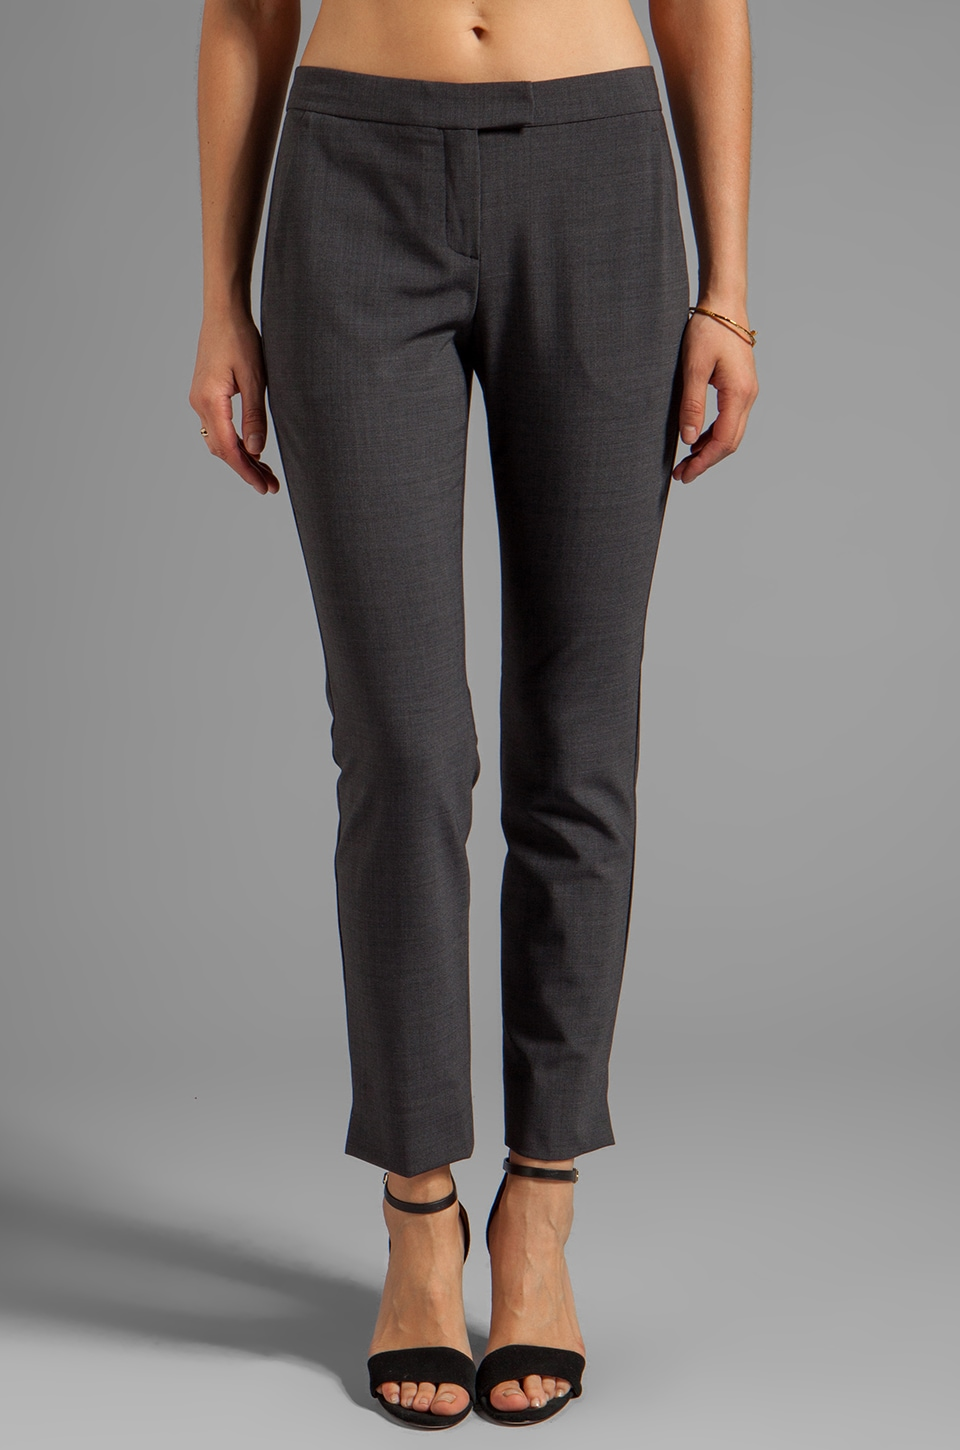 Theory Ibbey 2 Skinny Trouser in Charcoal